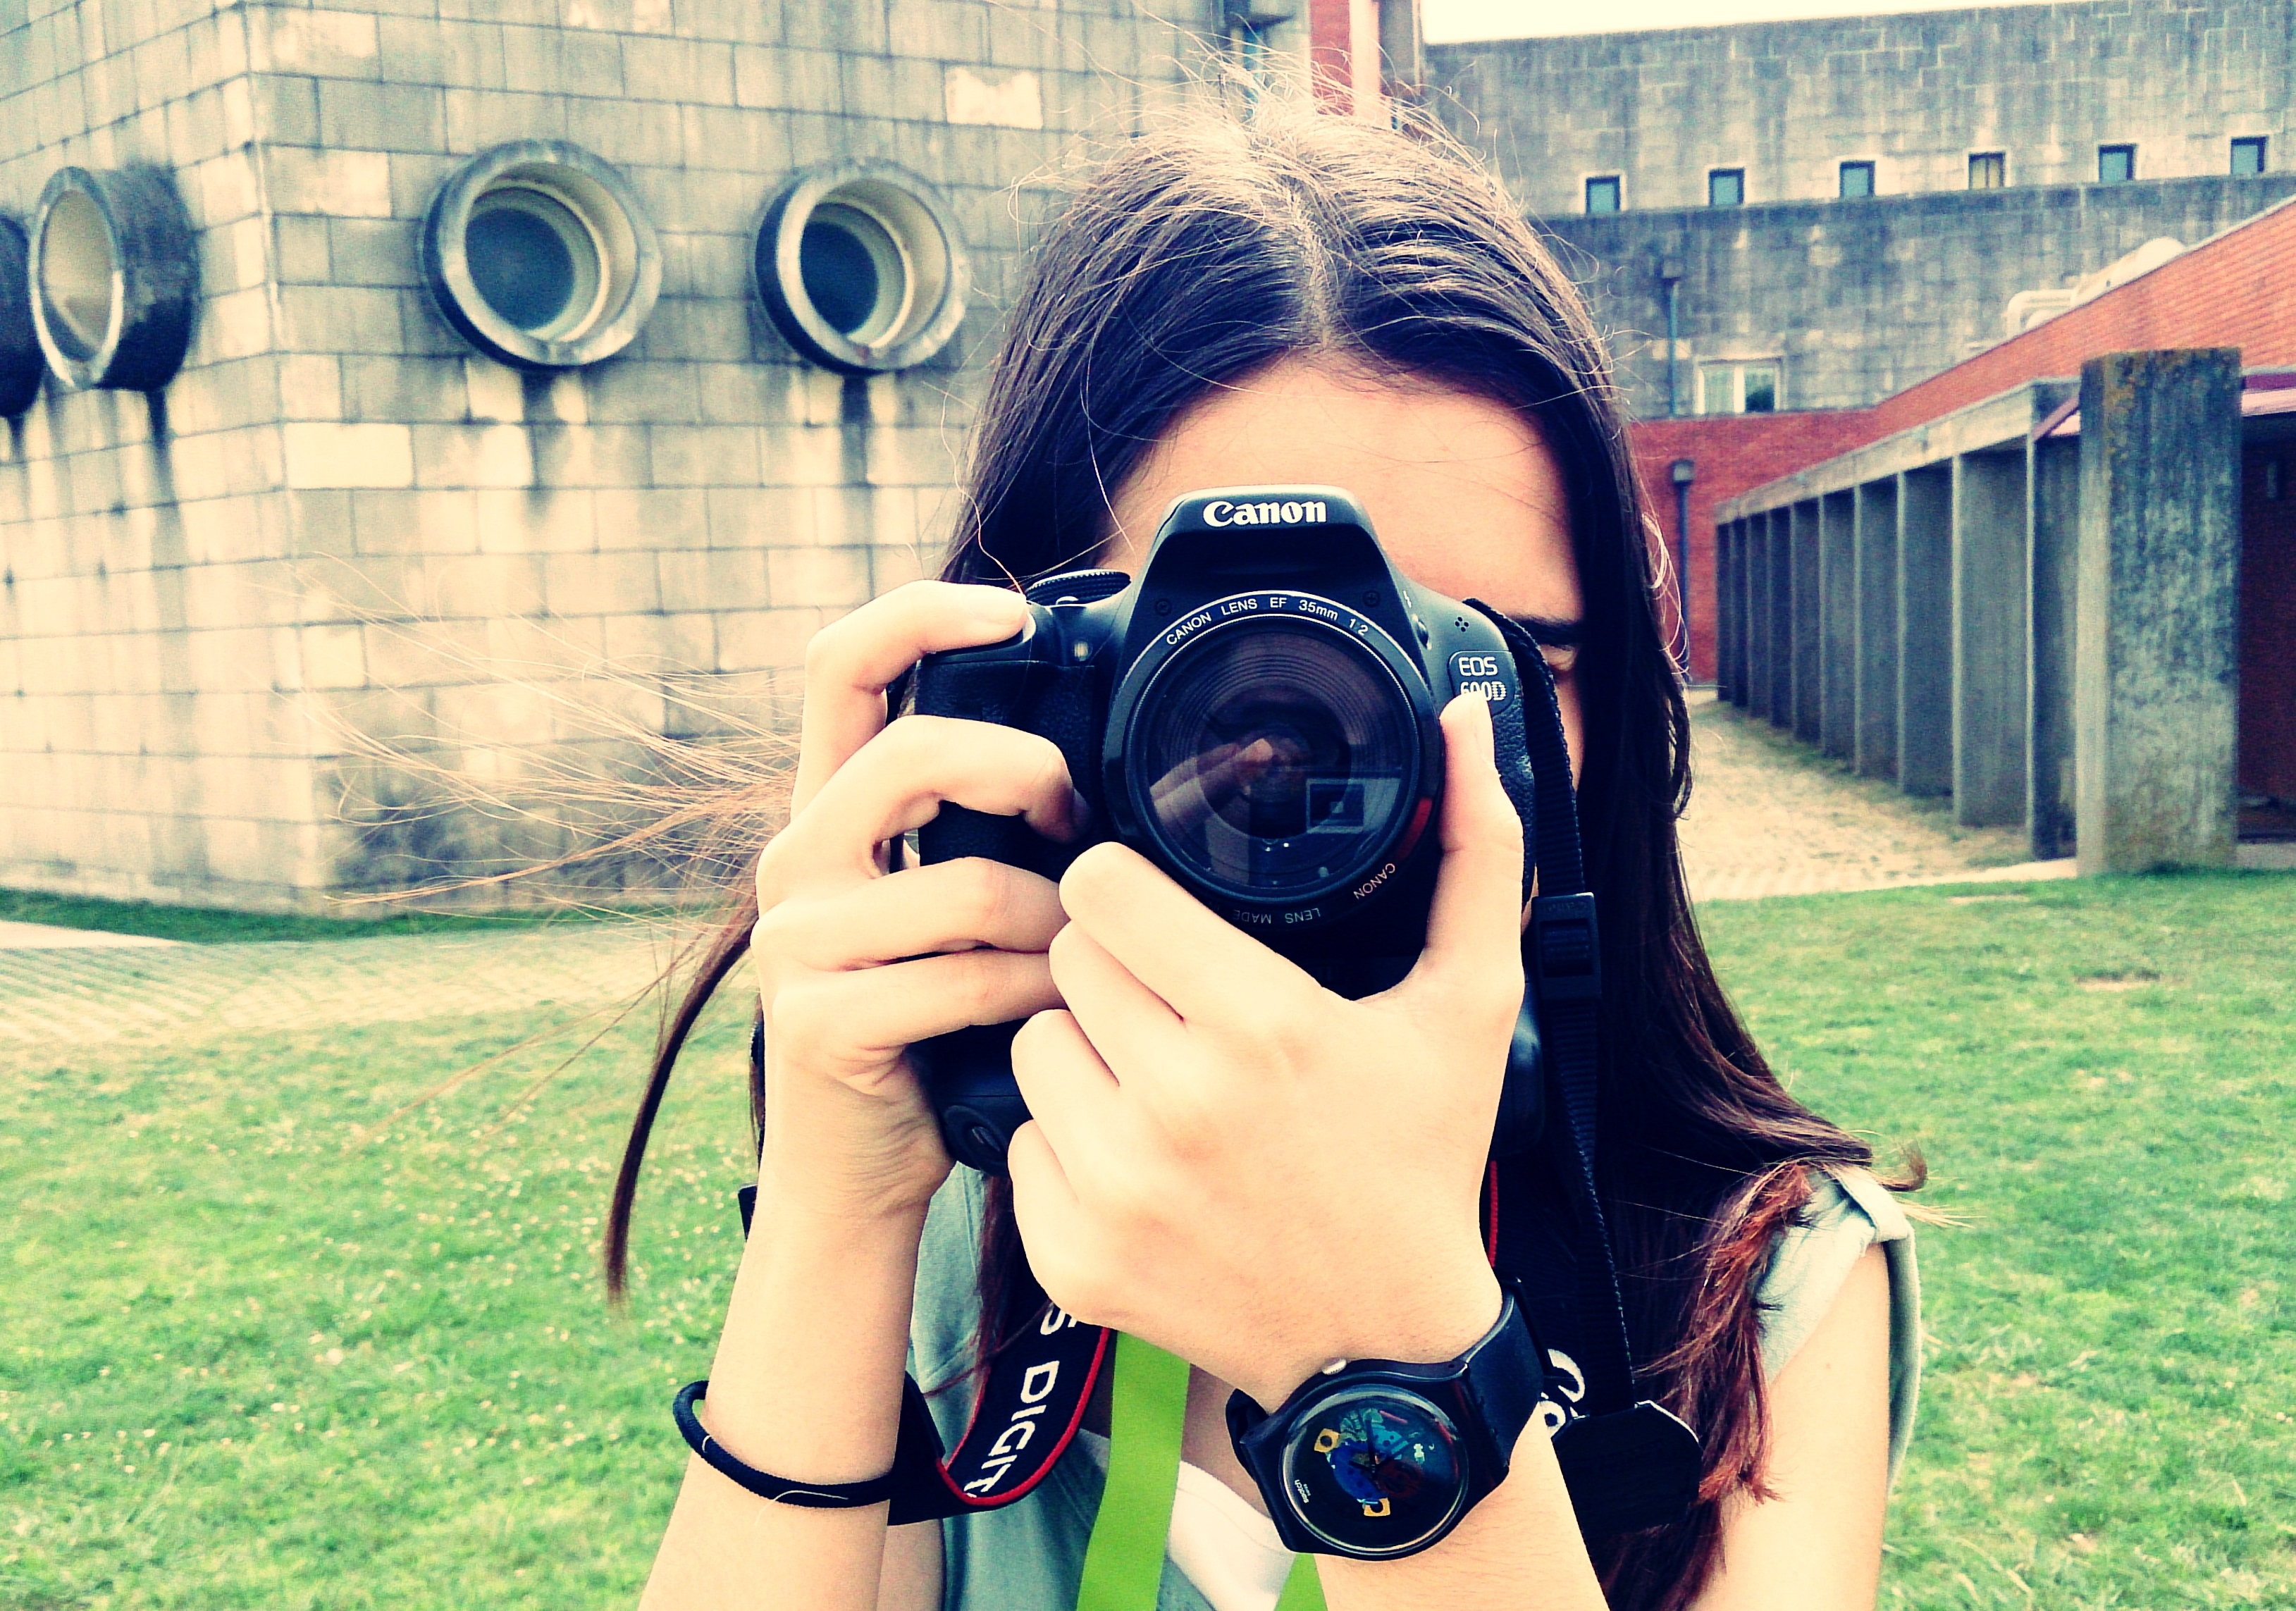 show you how to get incomes with your photos